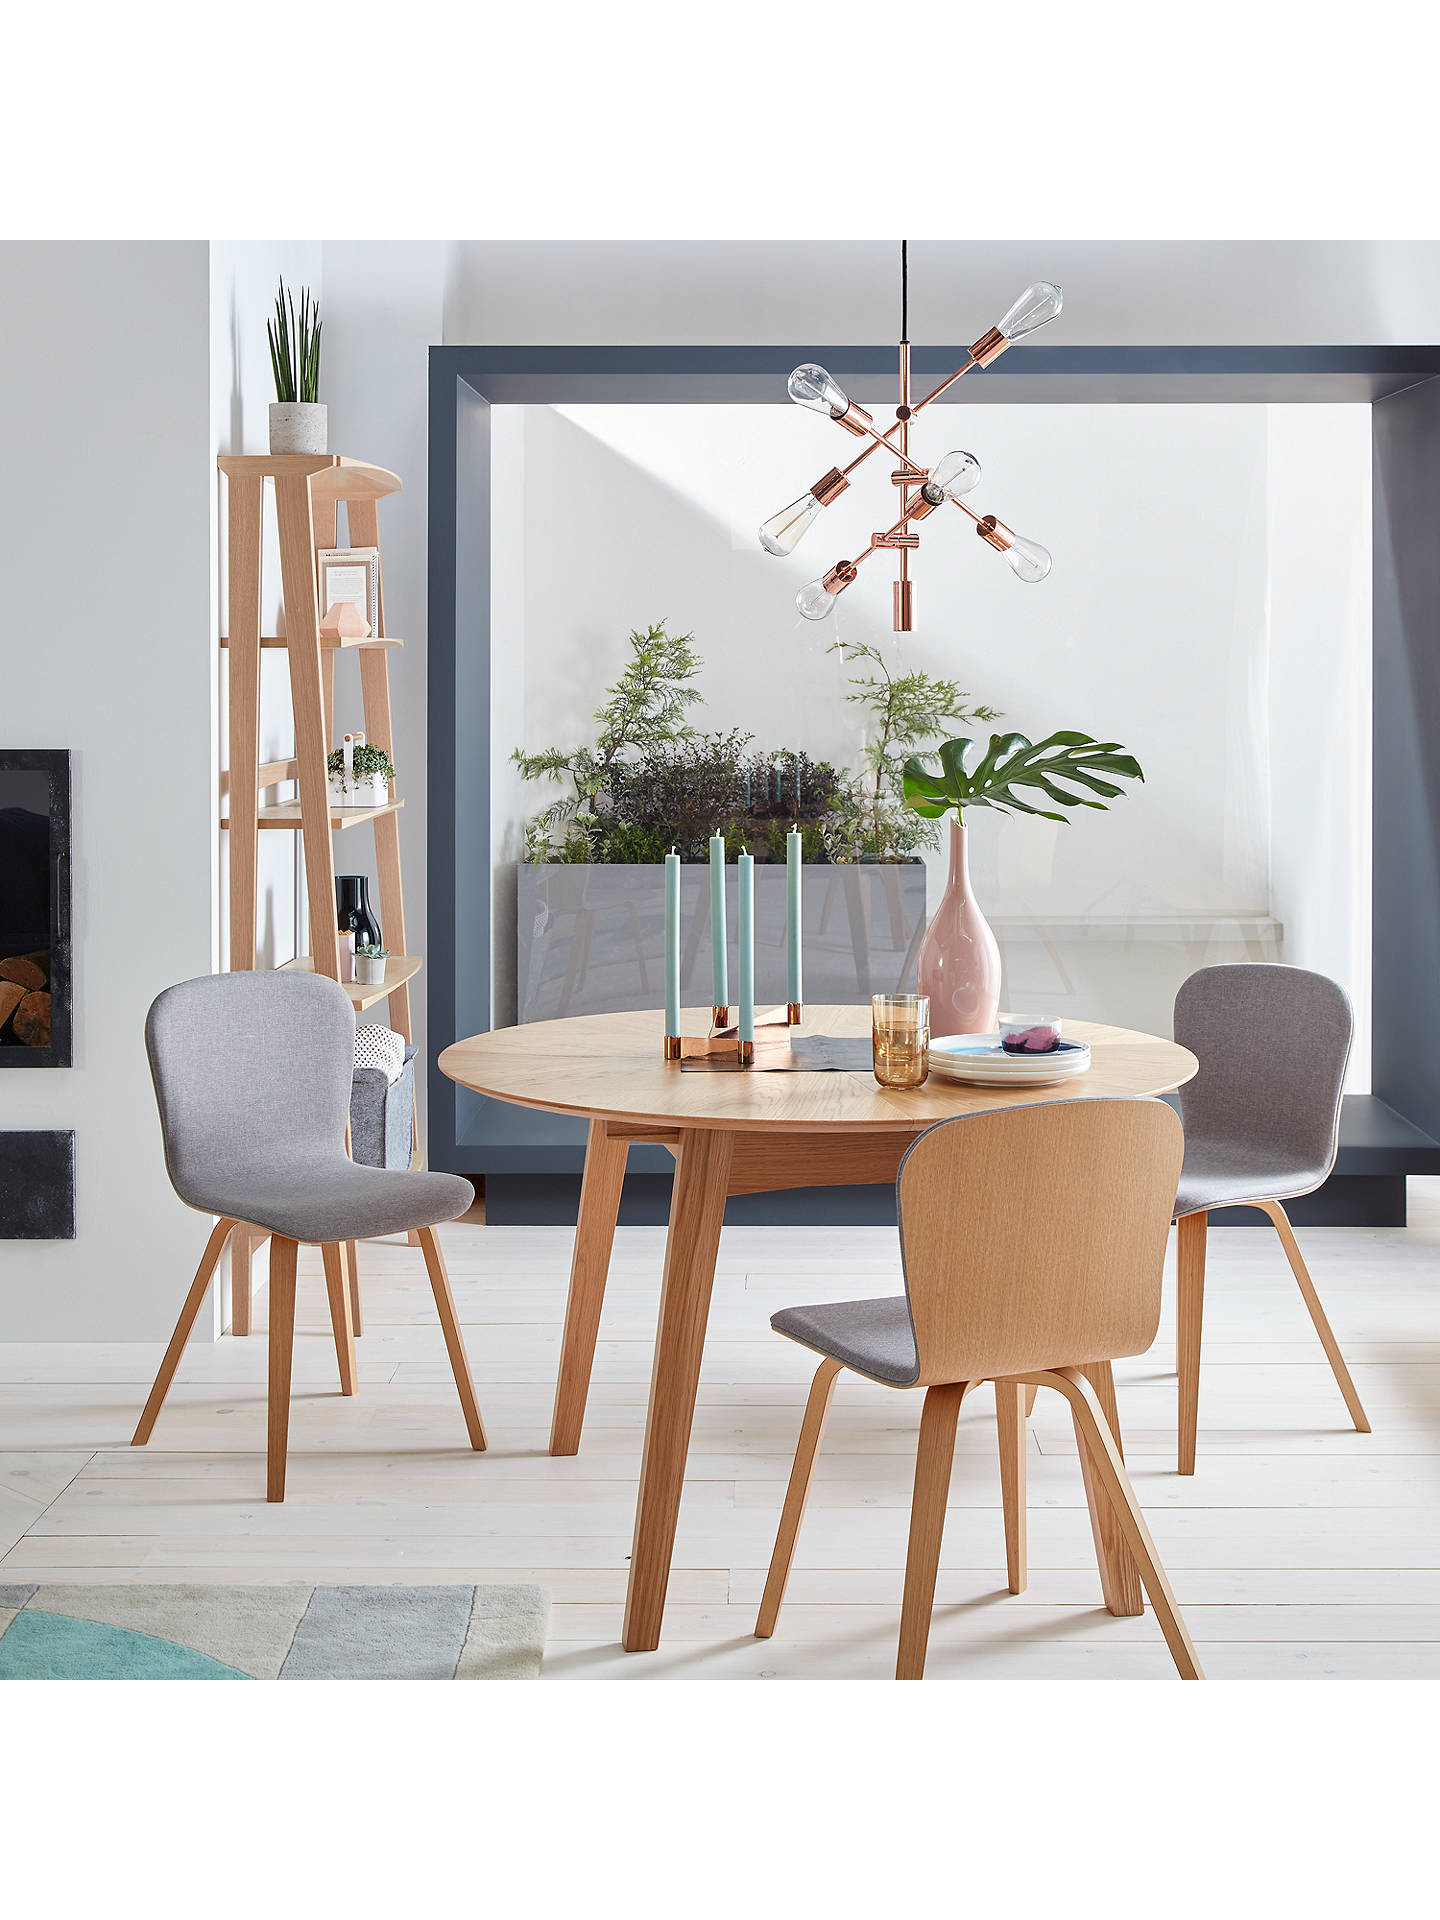 new concept 915c0 396c4 John Lewis & Partners Duhrer 4-6 Seater Extending Round Dining Table